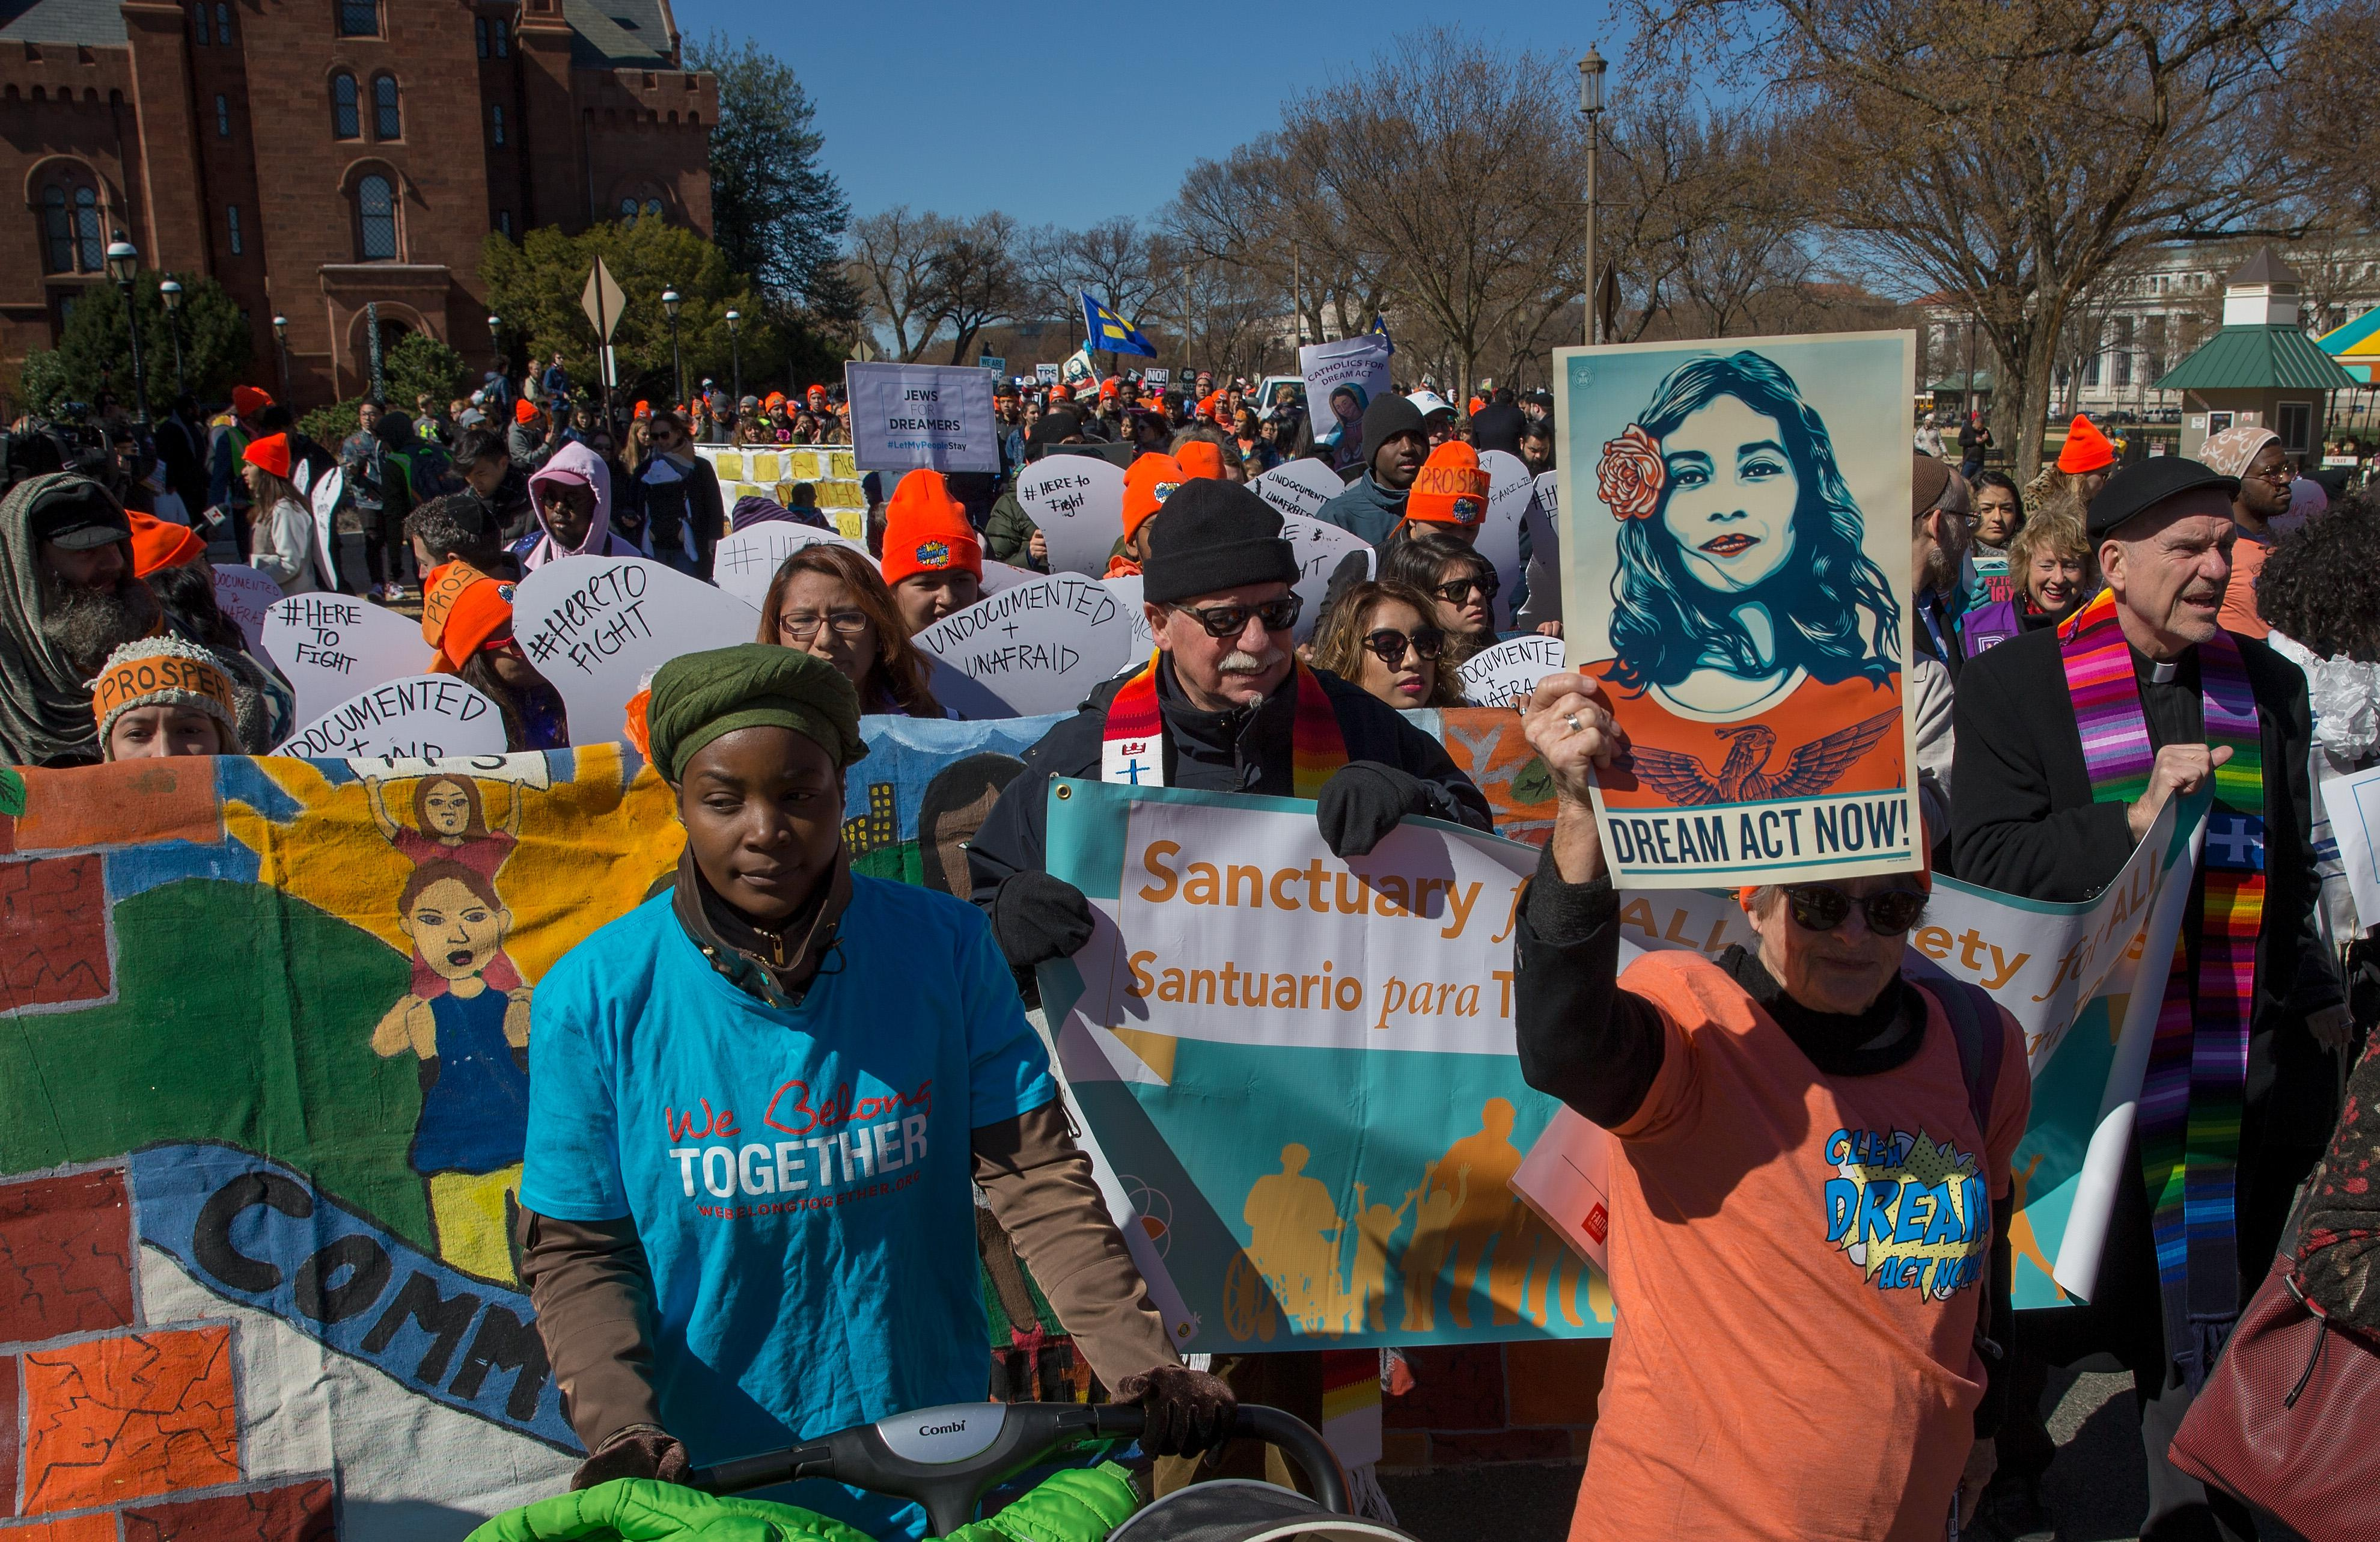 Pro DACA and Dreamer supporters march towards the US Capital on the National Mall on March 5, 2018 in Washington, D.C.